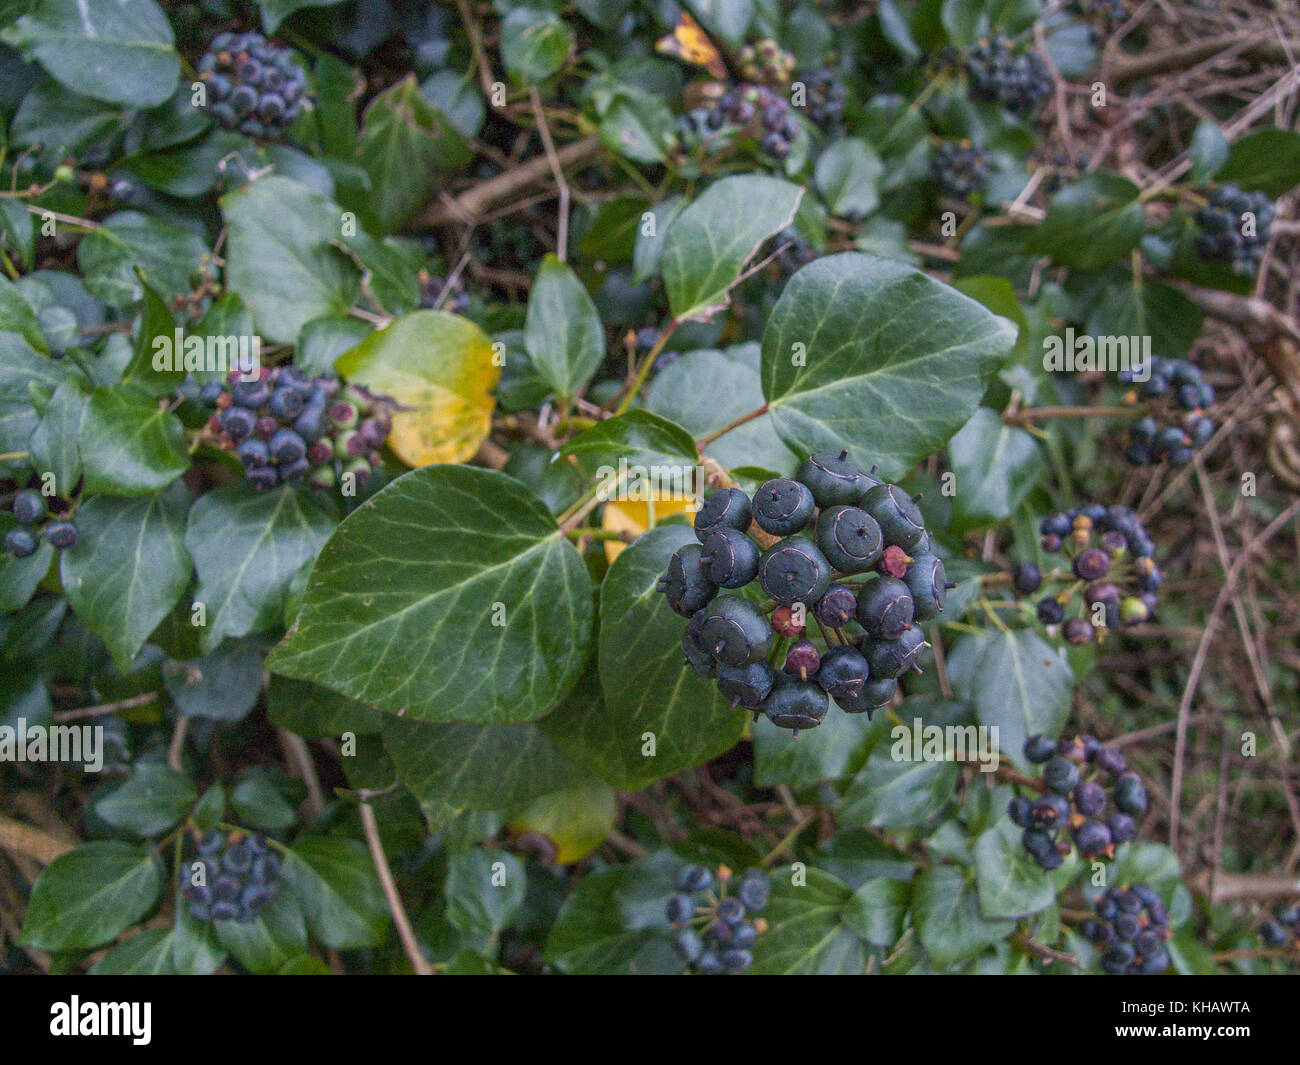 Close-up image of purple-black berries of Ivy (Hedera helix). - Stock Image